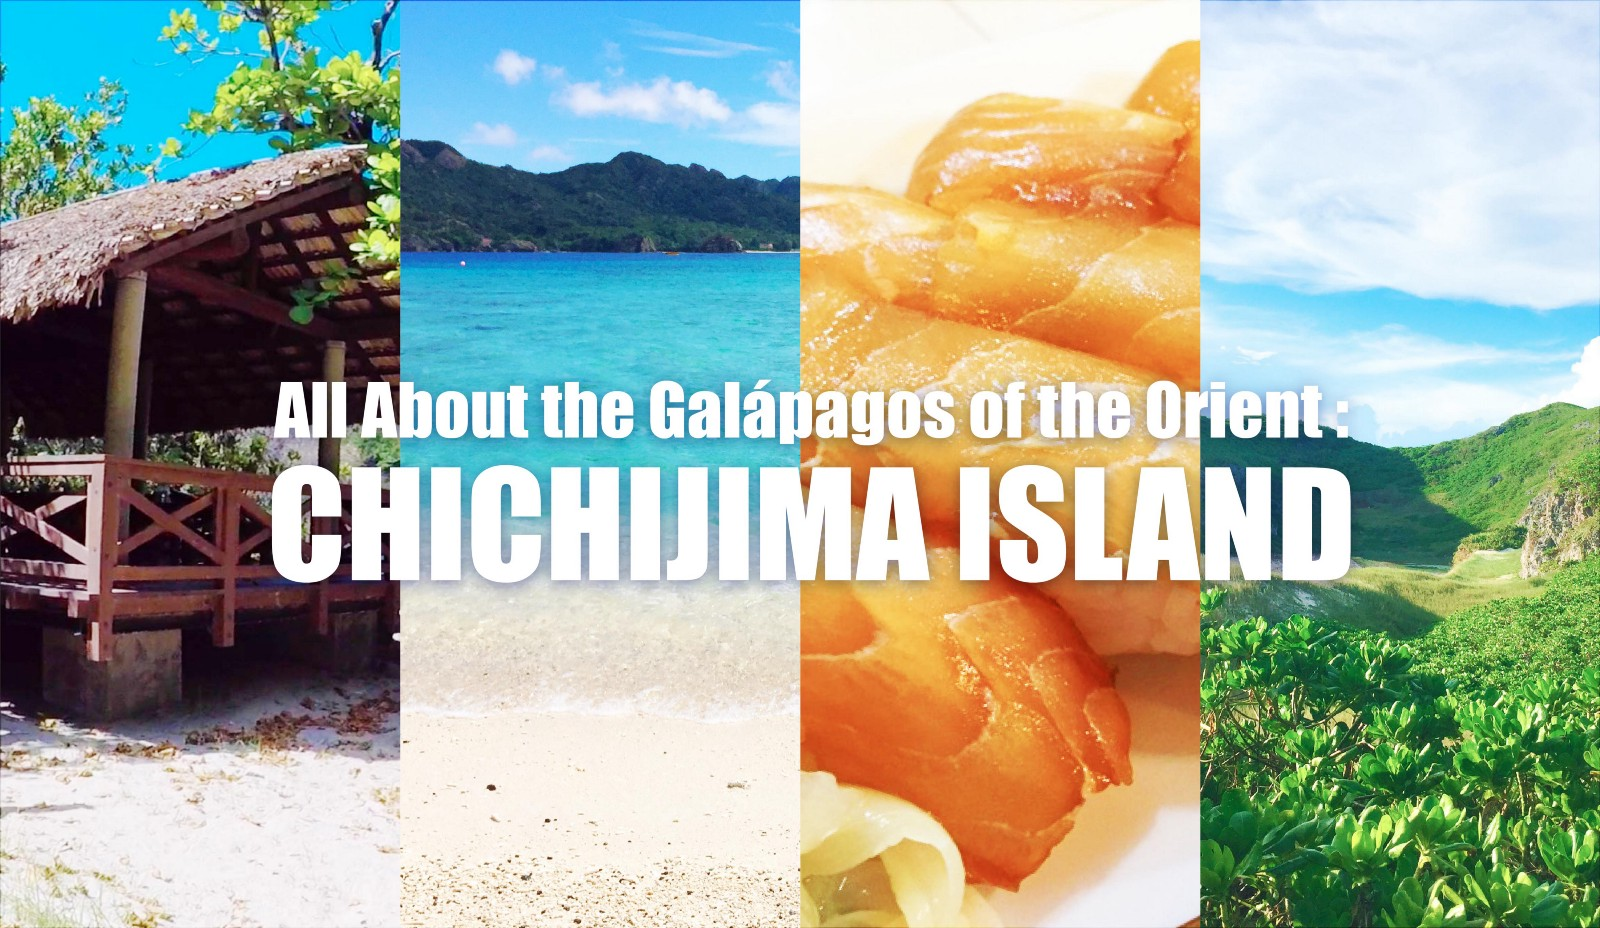 Things to Do in Chichijima Island